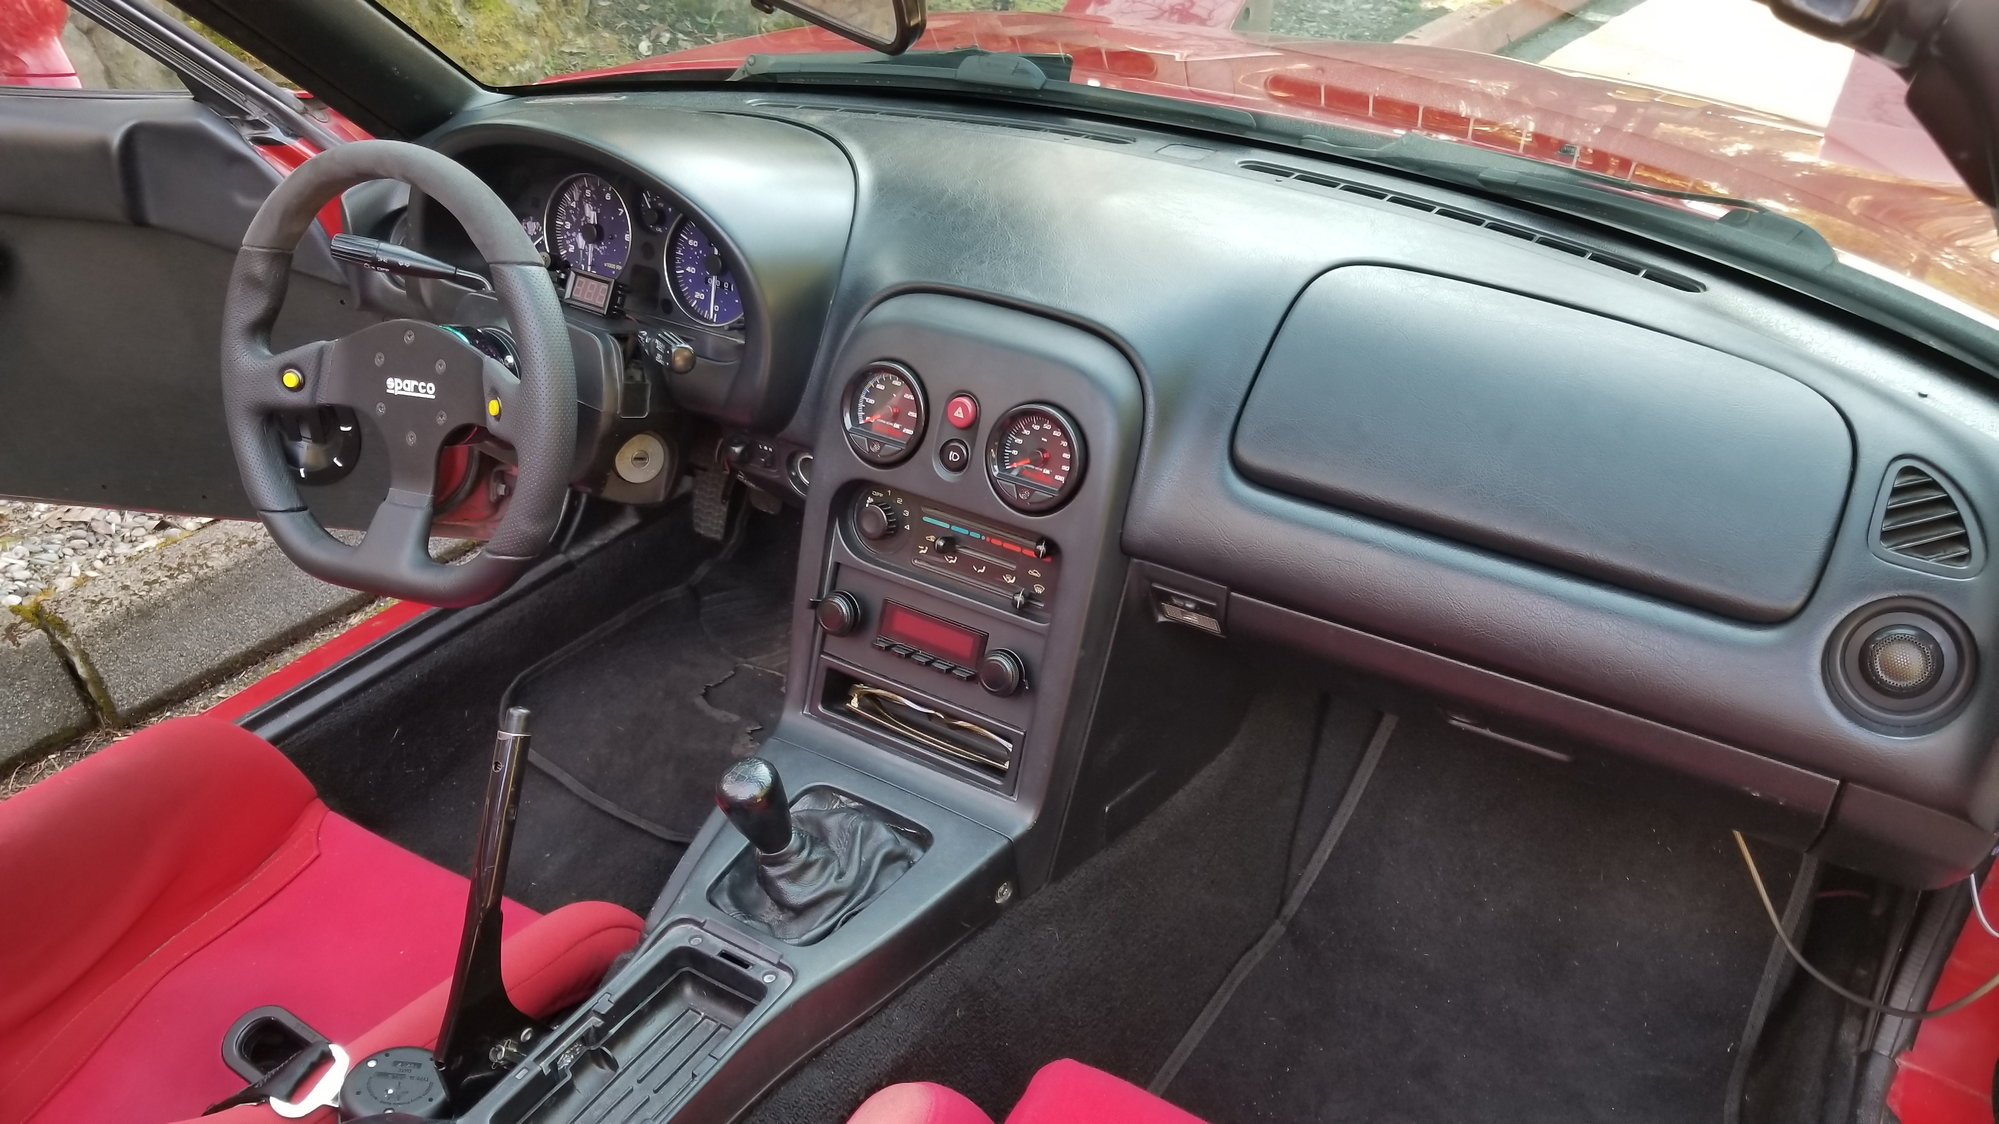 Craigslist Dc Cars By Owner >> S2000 seat fitment - Project VTEC - Miata Turbo Forum ...